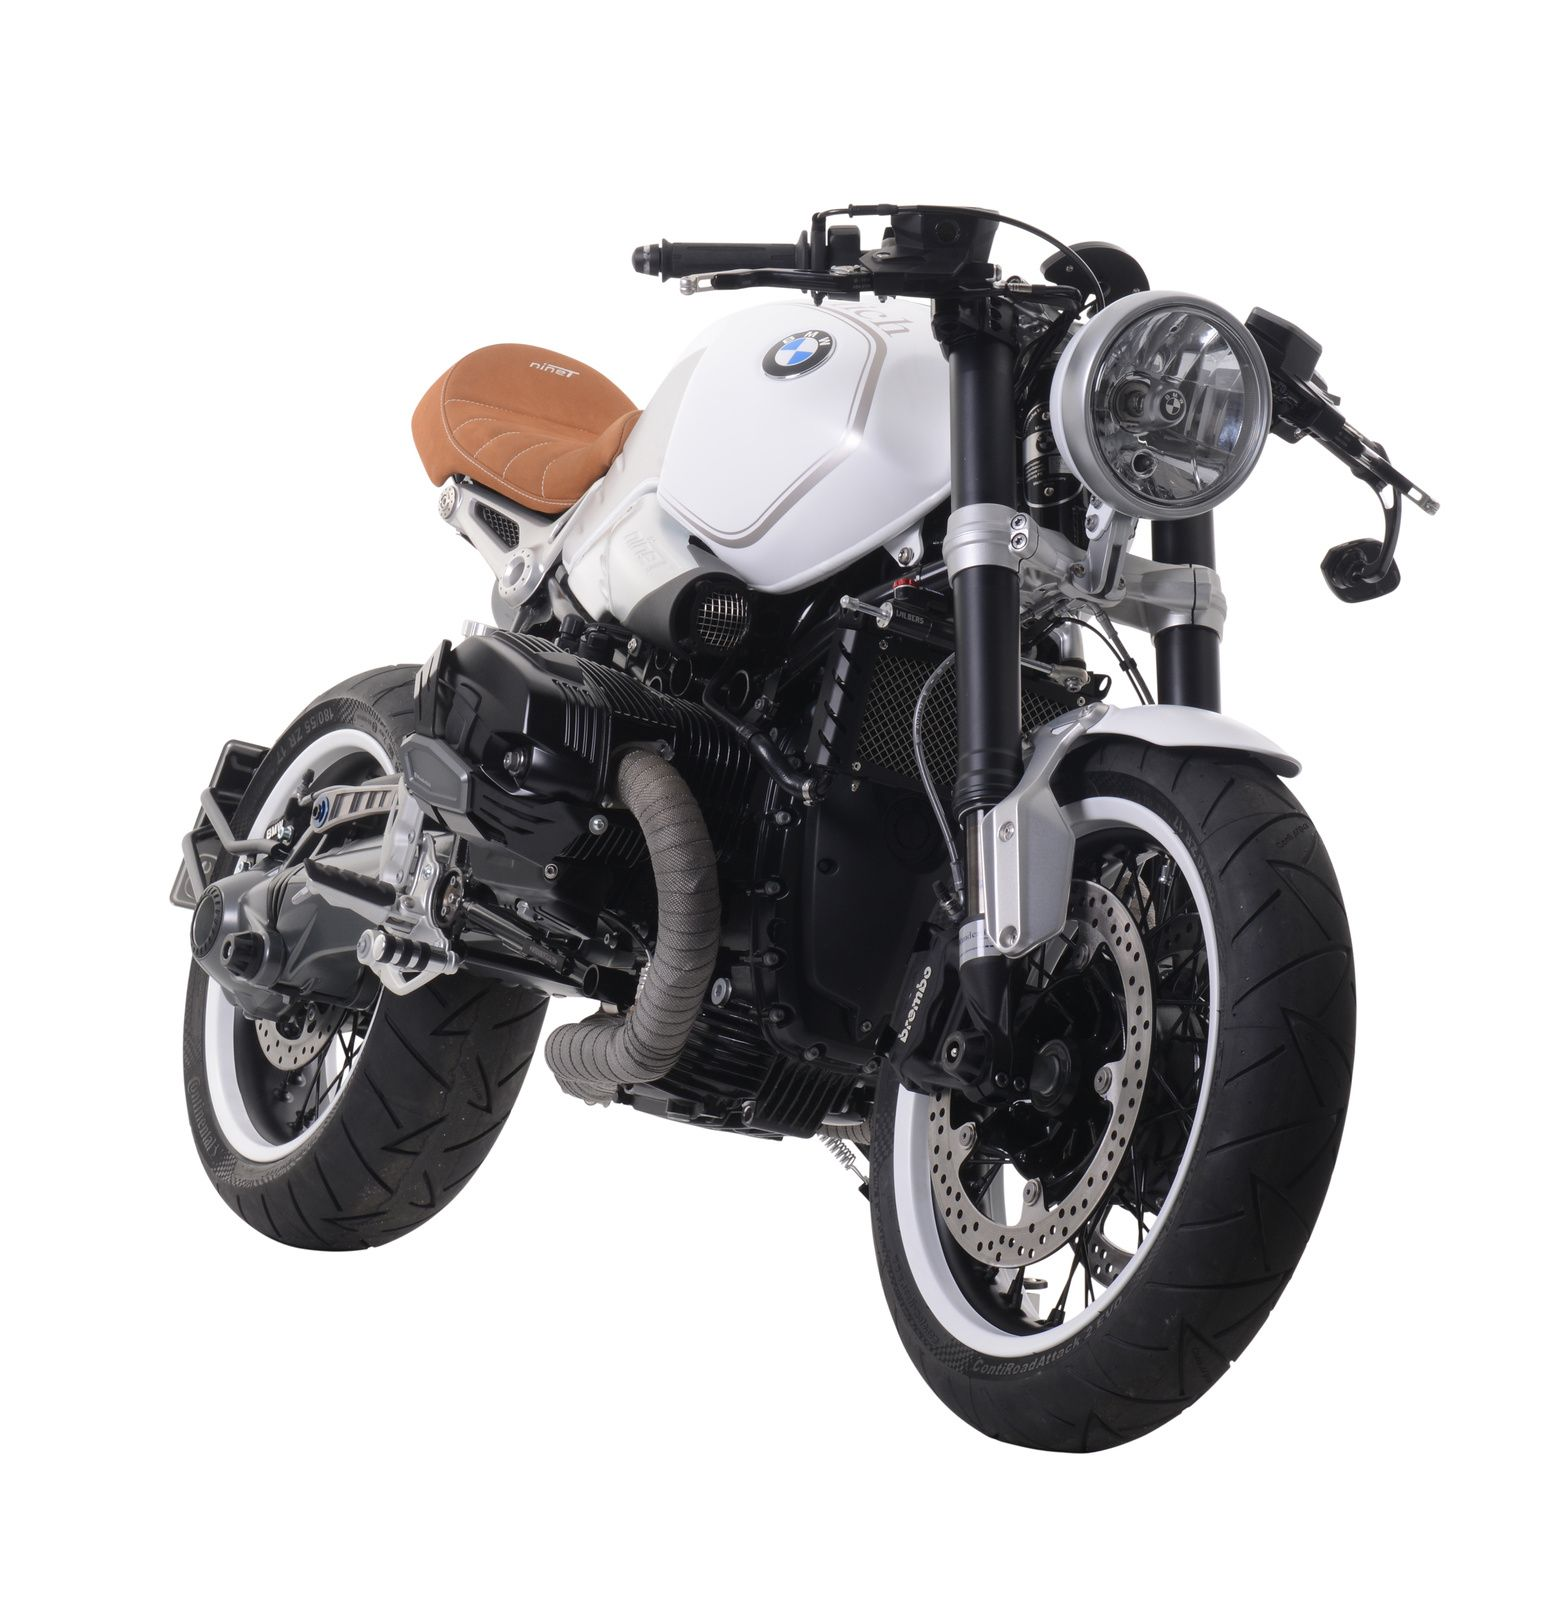 nine t cafe racer wunderlich cafe racers moto voiture. Black Bedroom Furniture Sets. Home Design Ideas